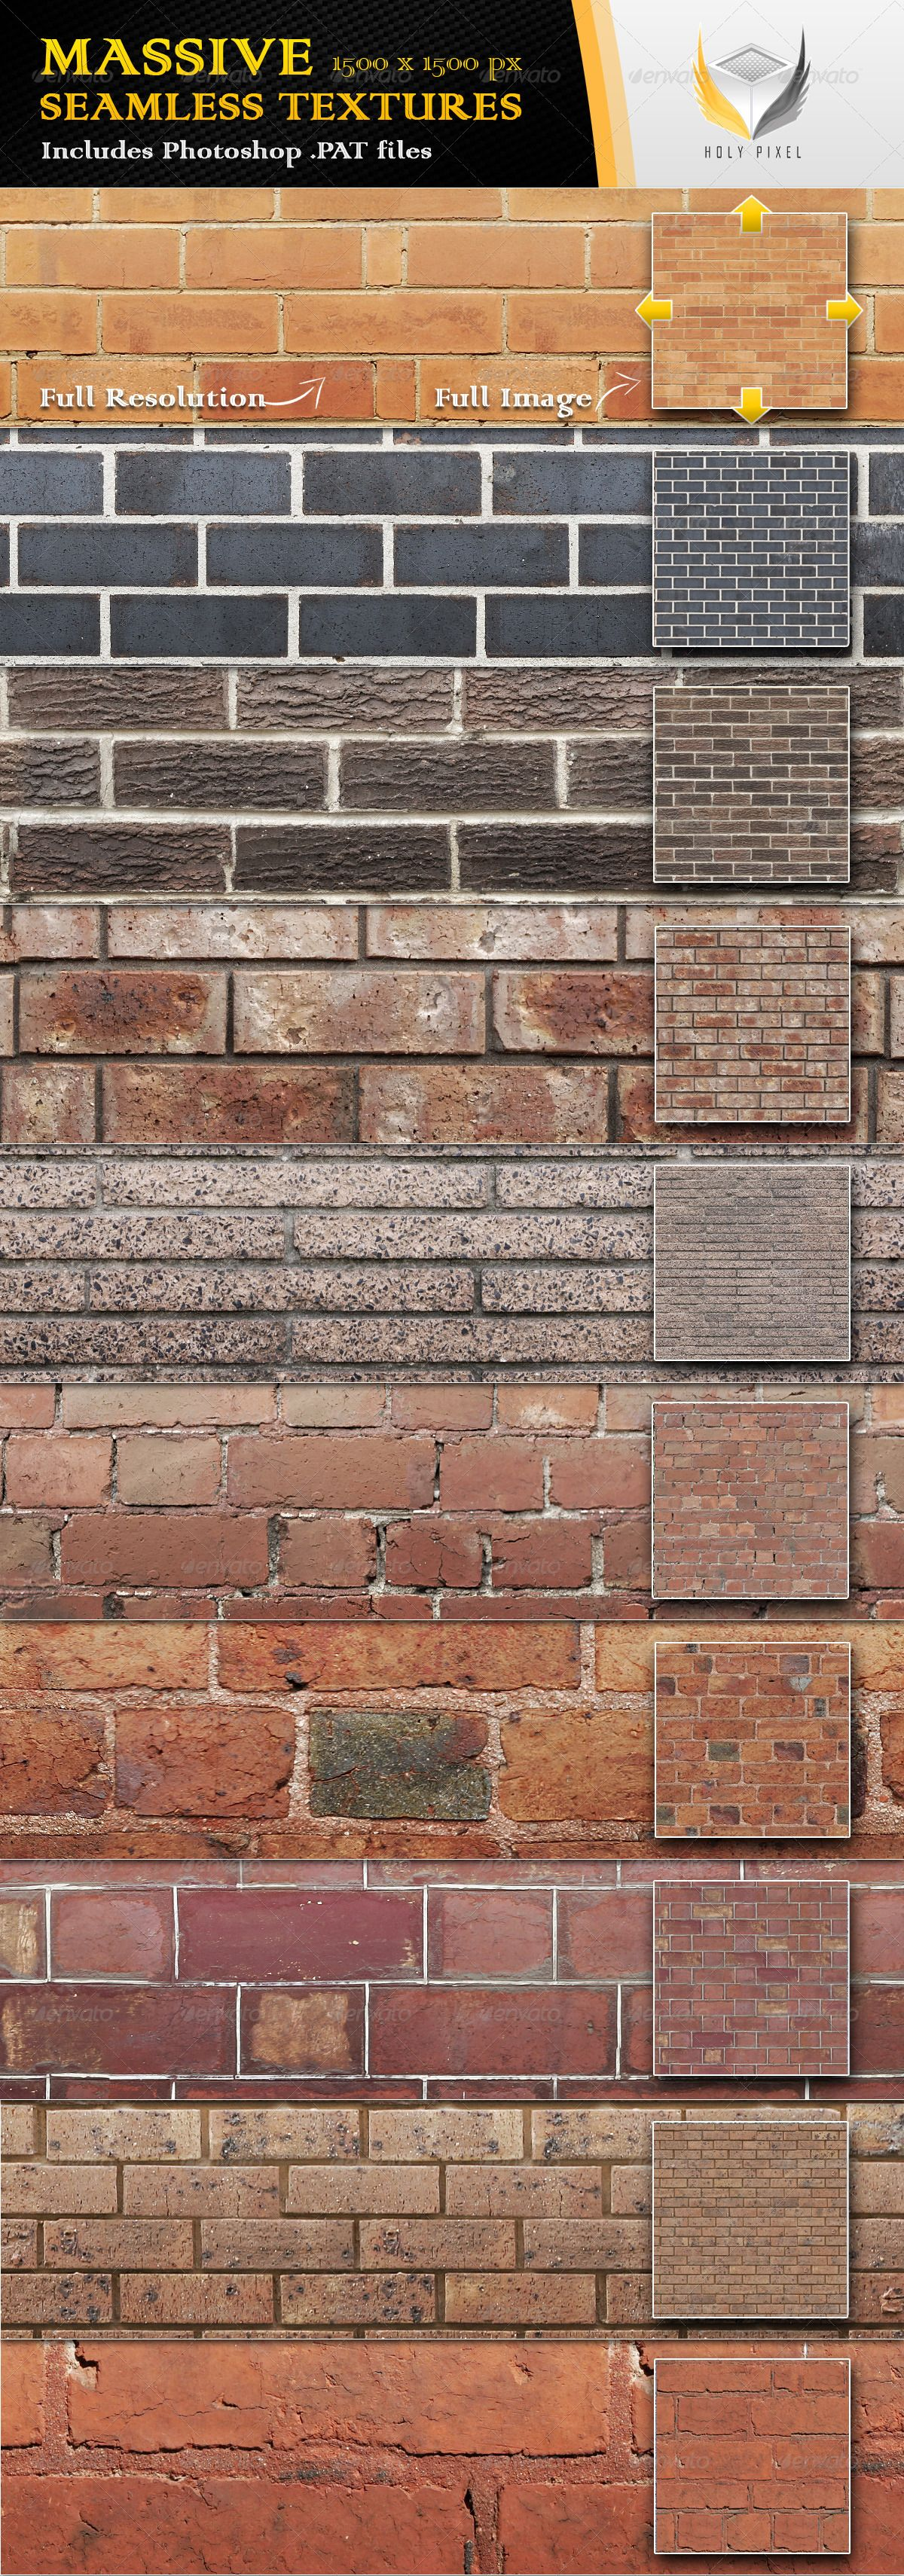 texture stone walls masonry walls stone seamless texture included